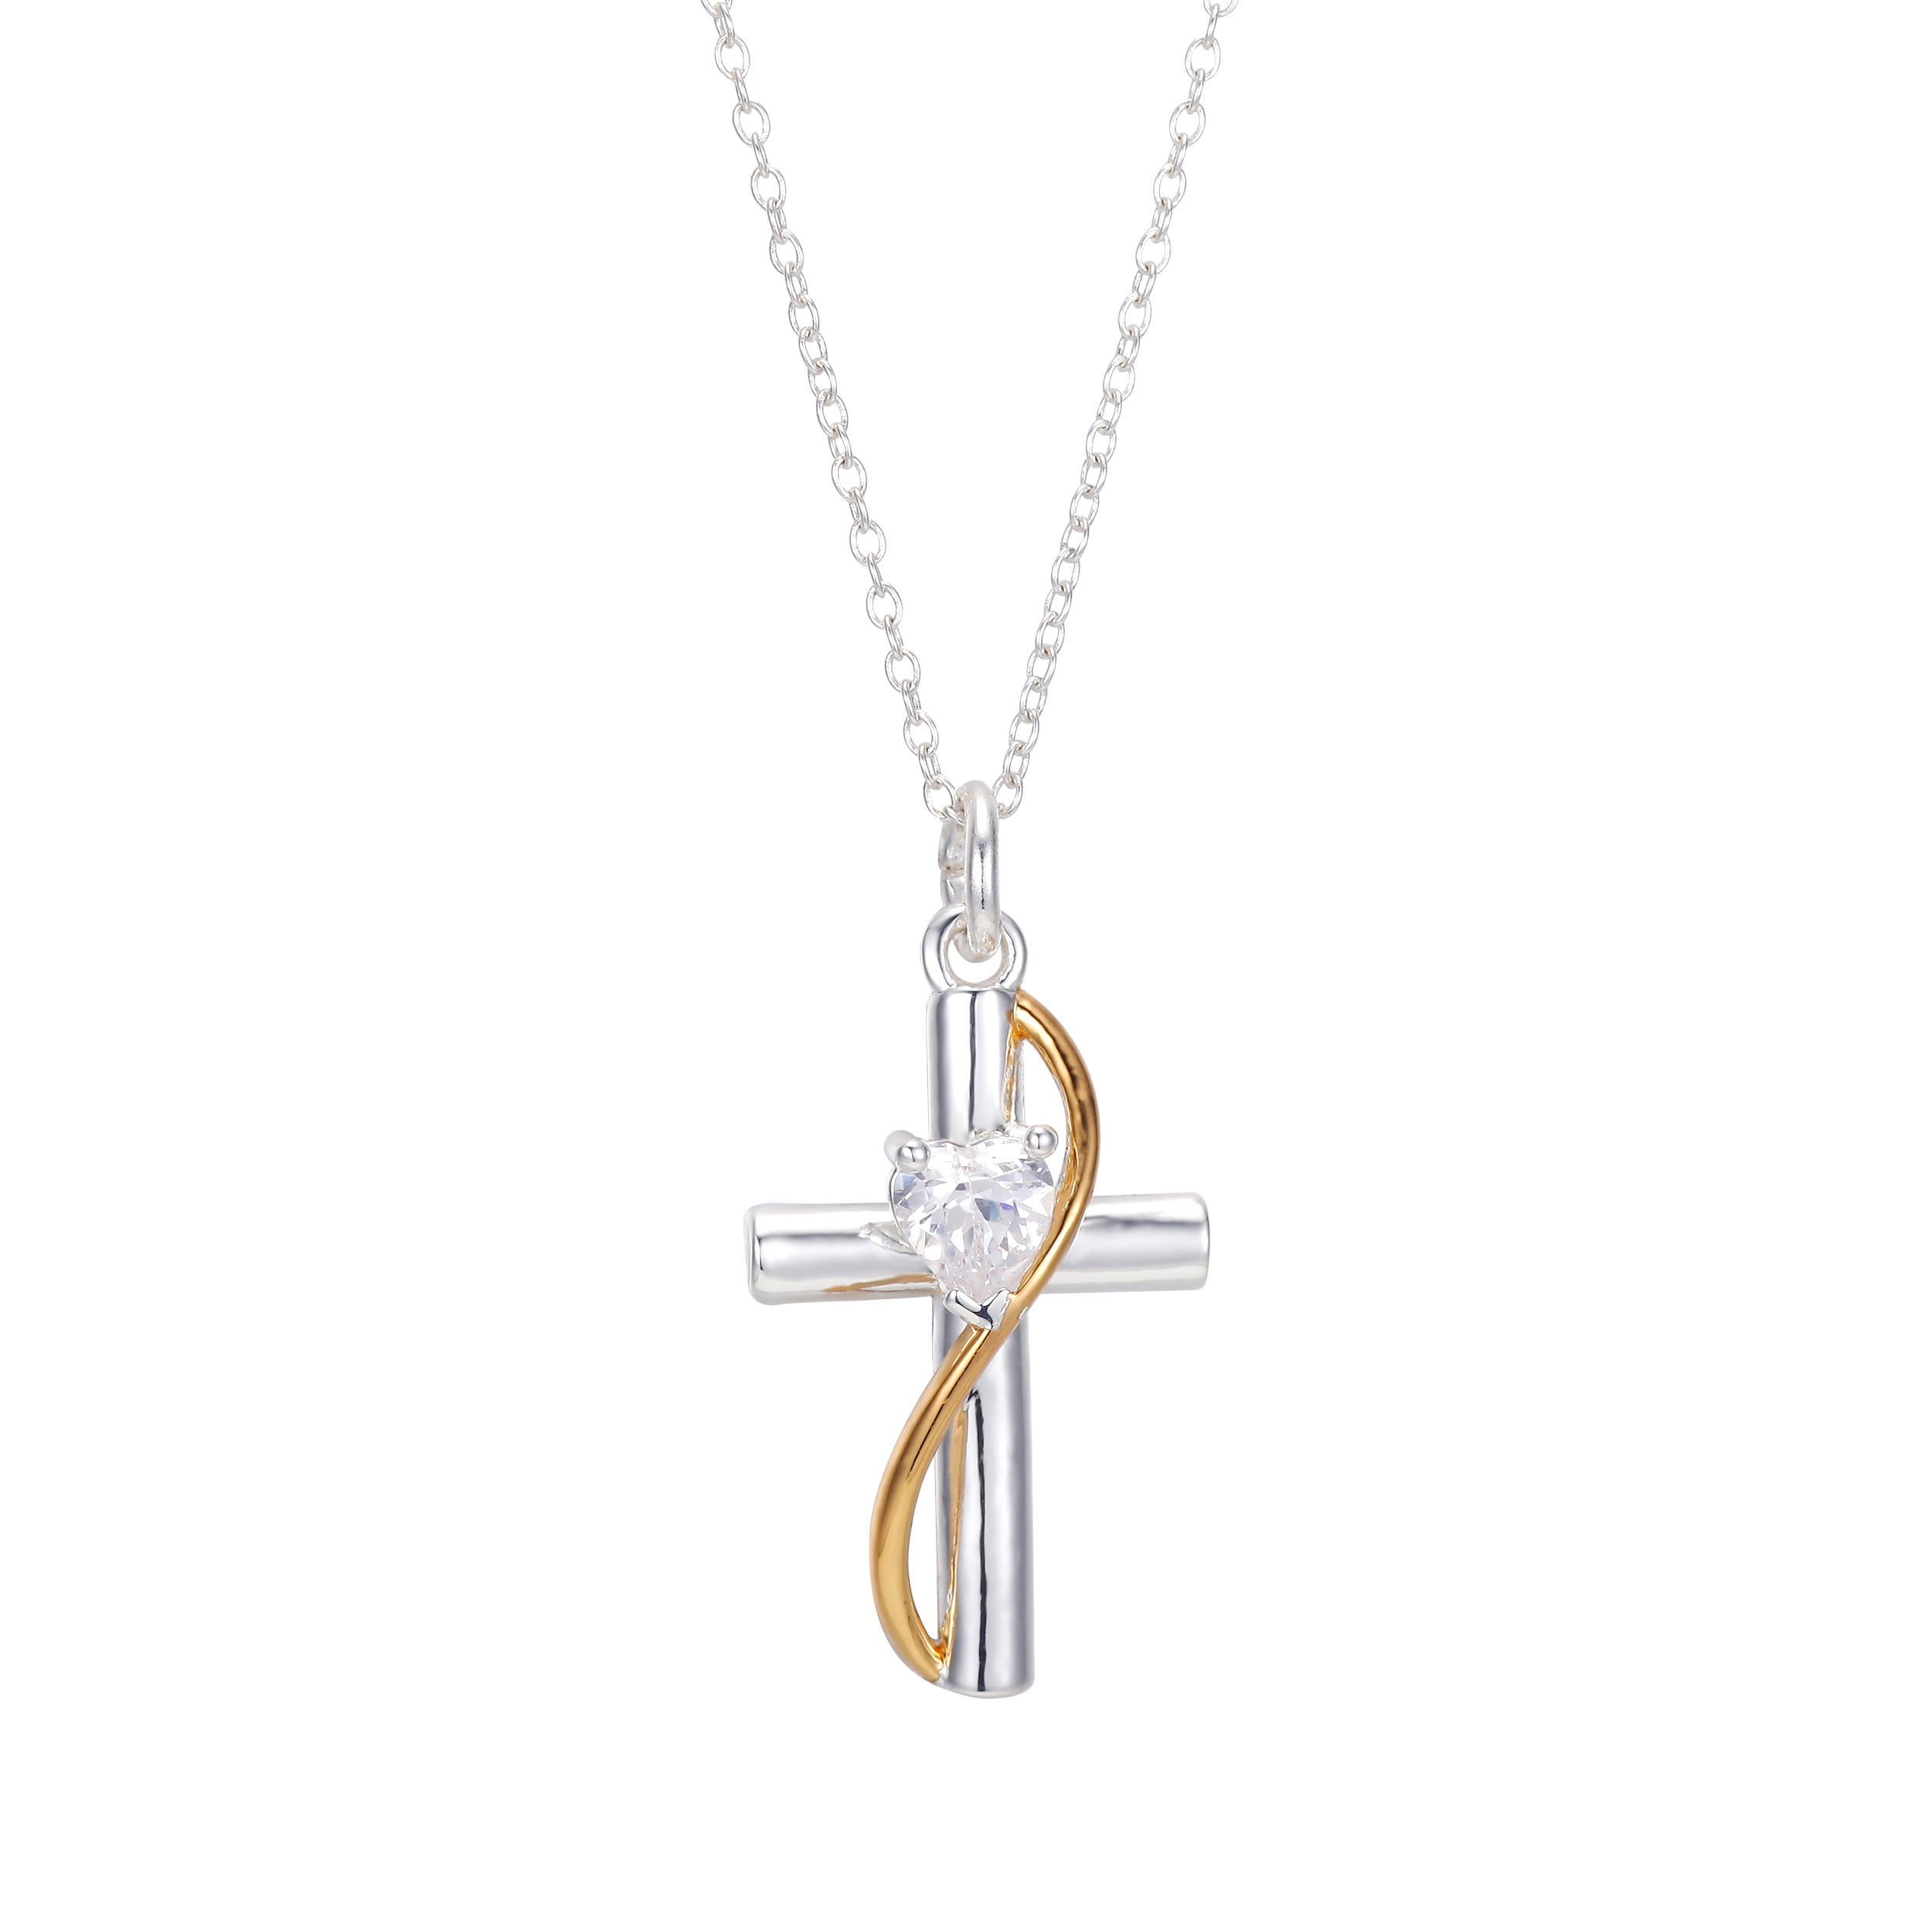 Cross Pendant with Cubic Zirconia in Silver Plated Two-Tone